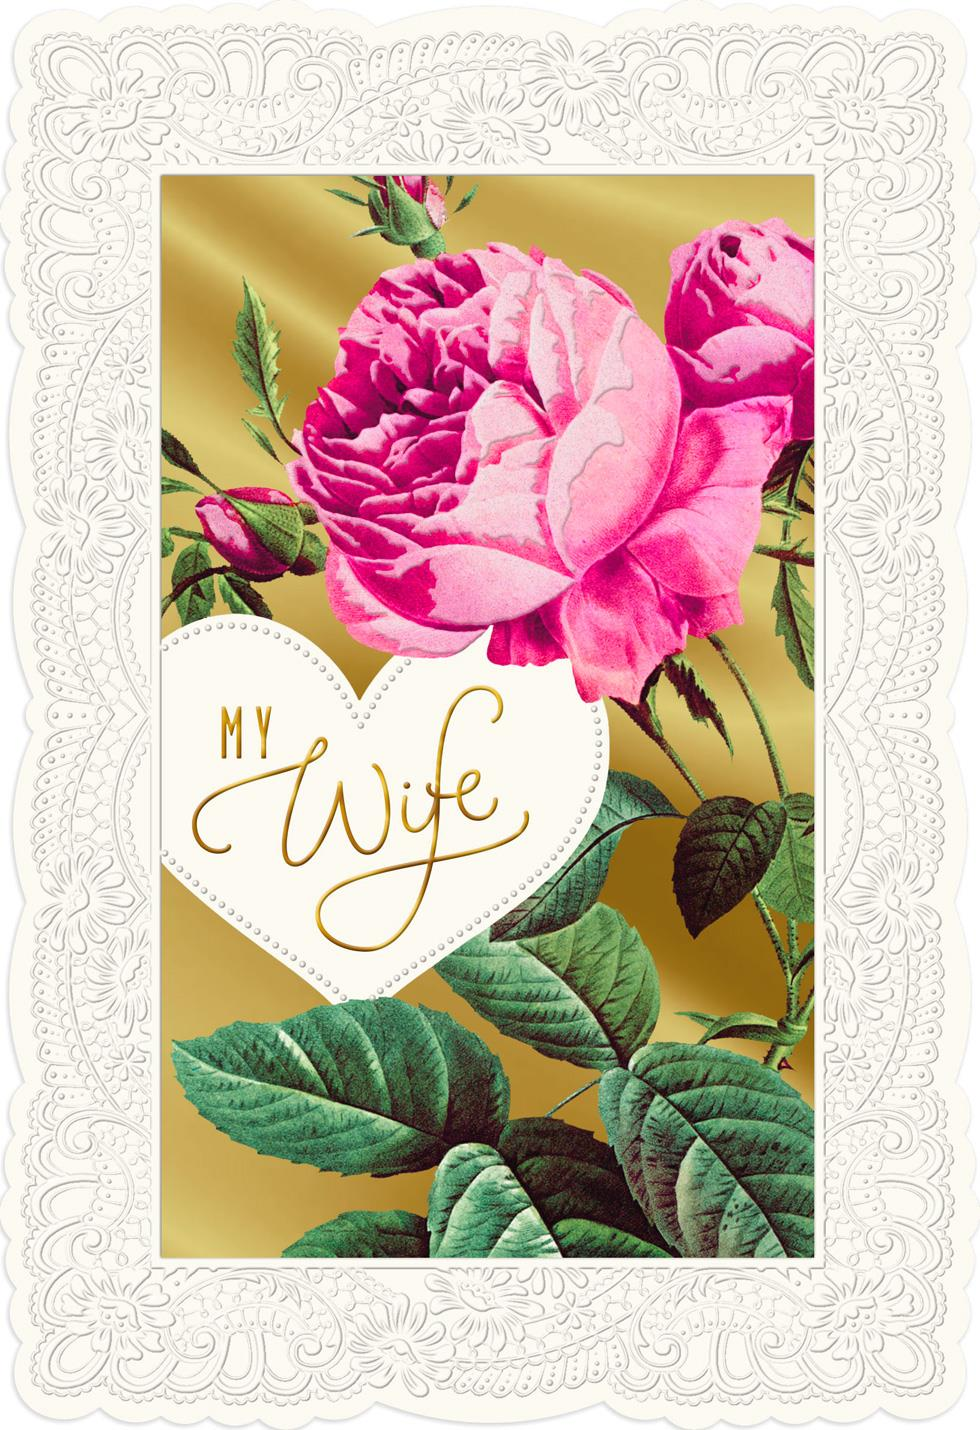 Pink Peony Flowers Valentine's Day Card For Wife